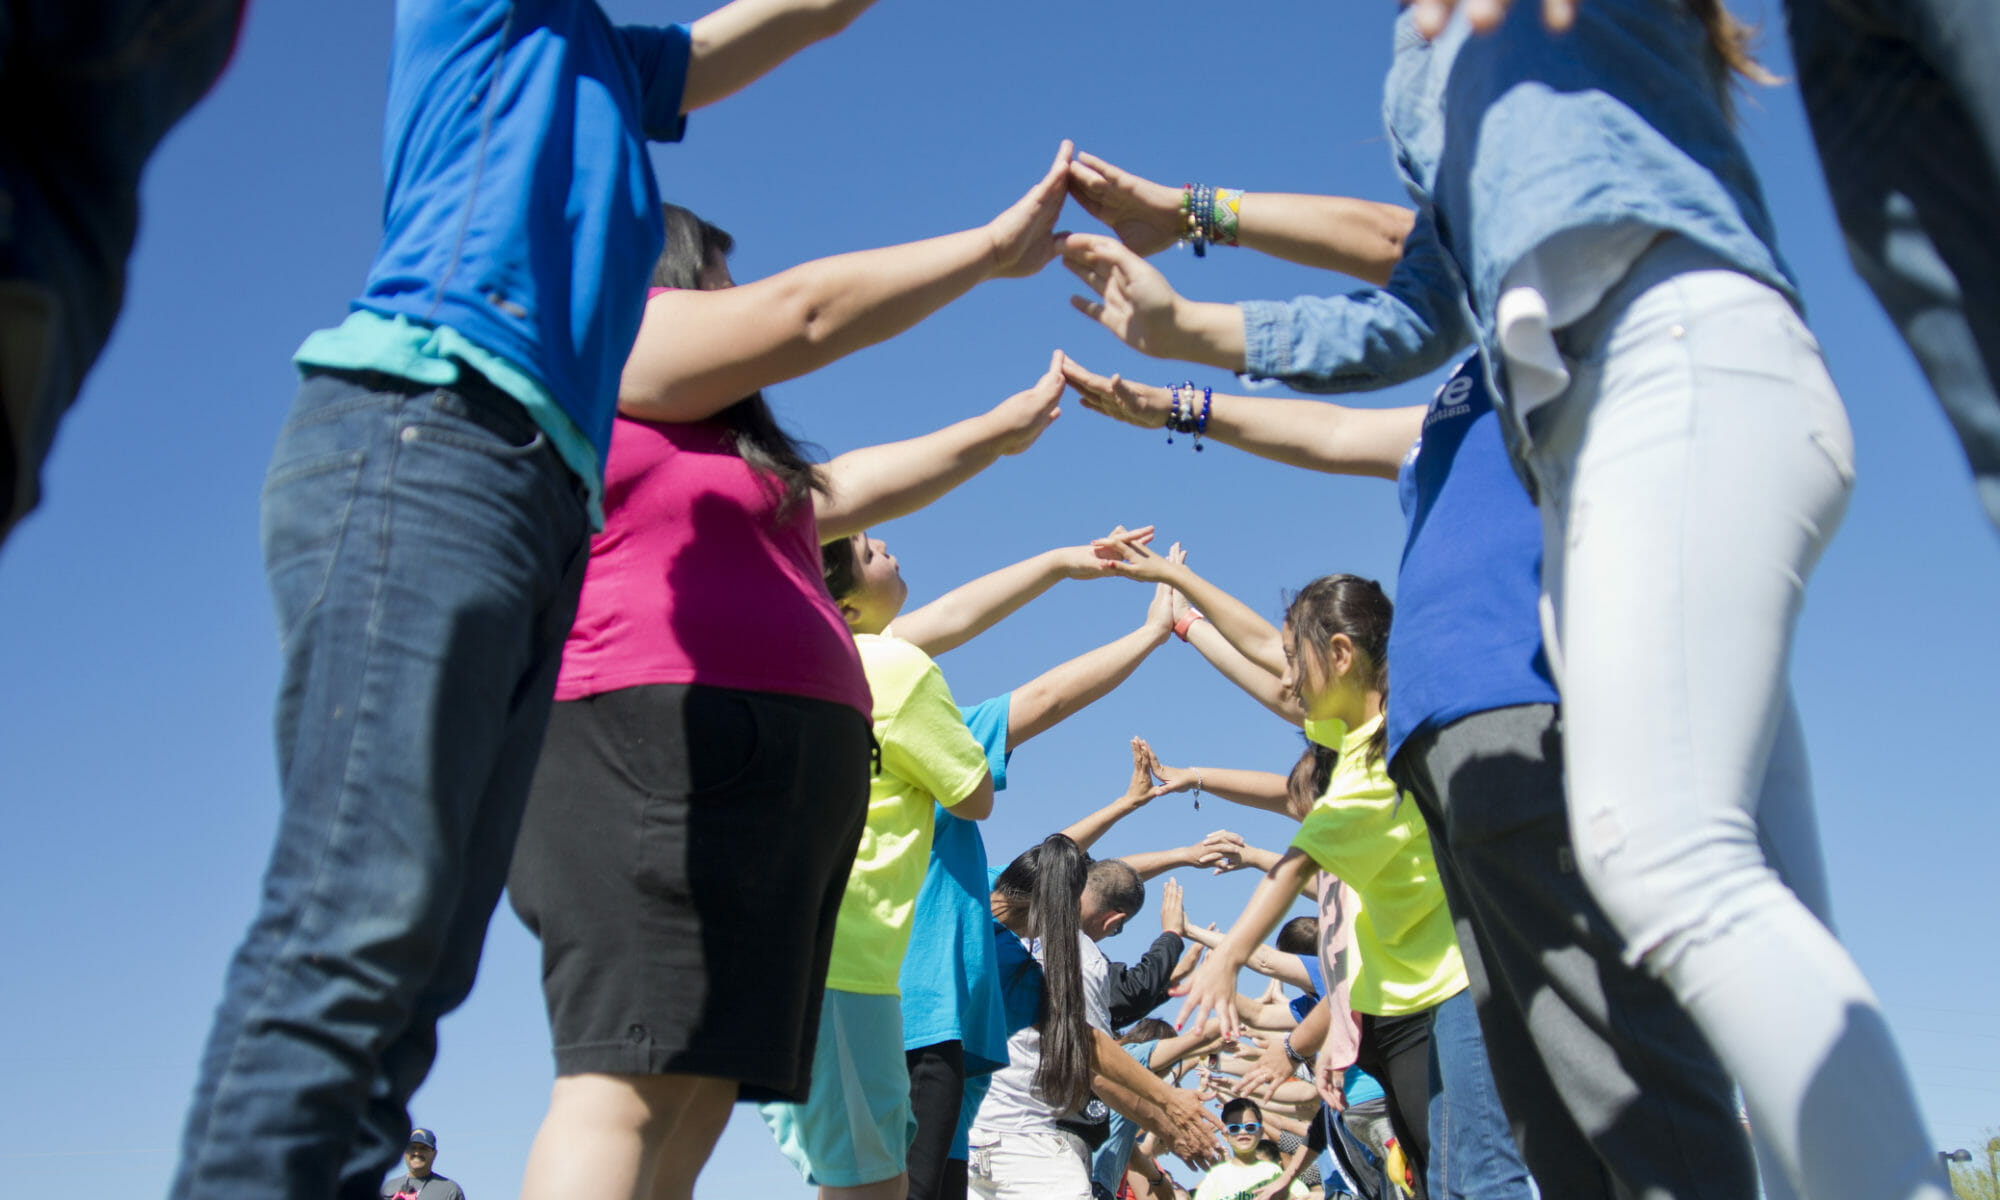 A group of adults holding hands to create a tunnel for kids to run through